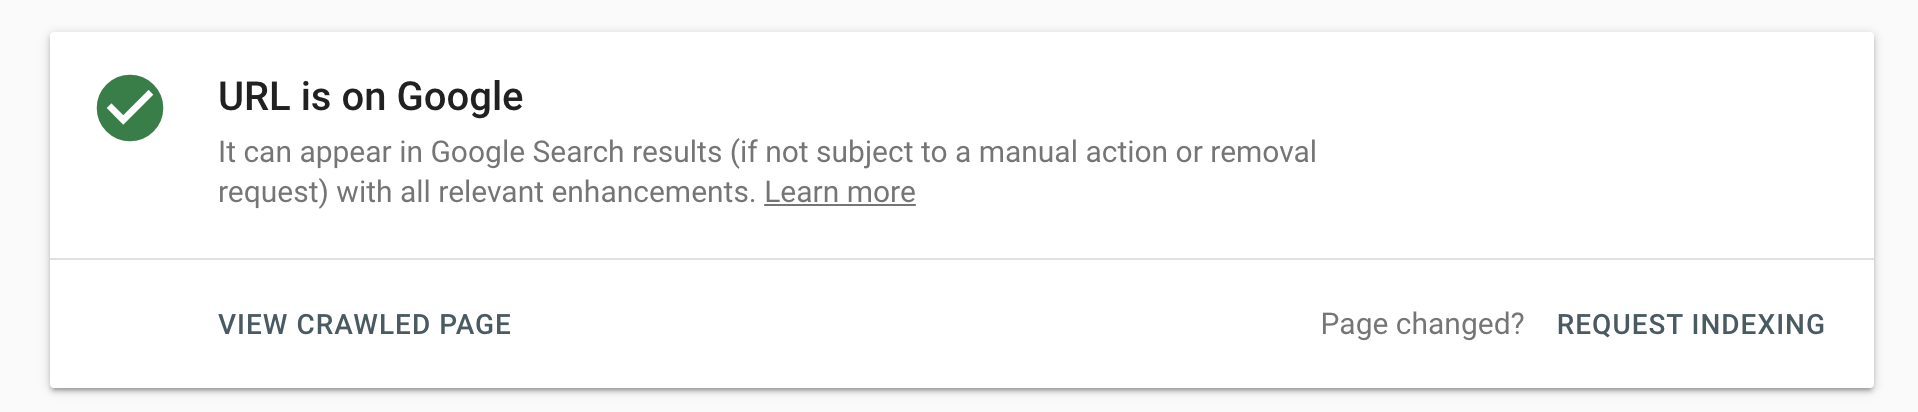 URL is Indexed on Google confirmation